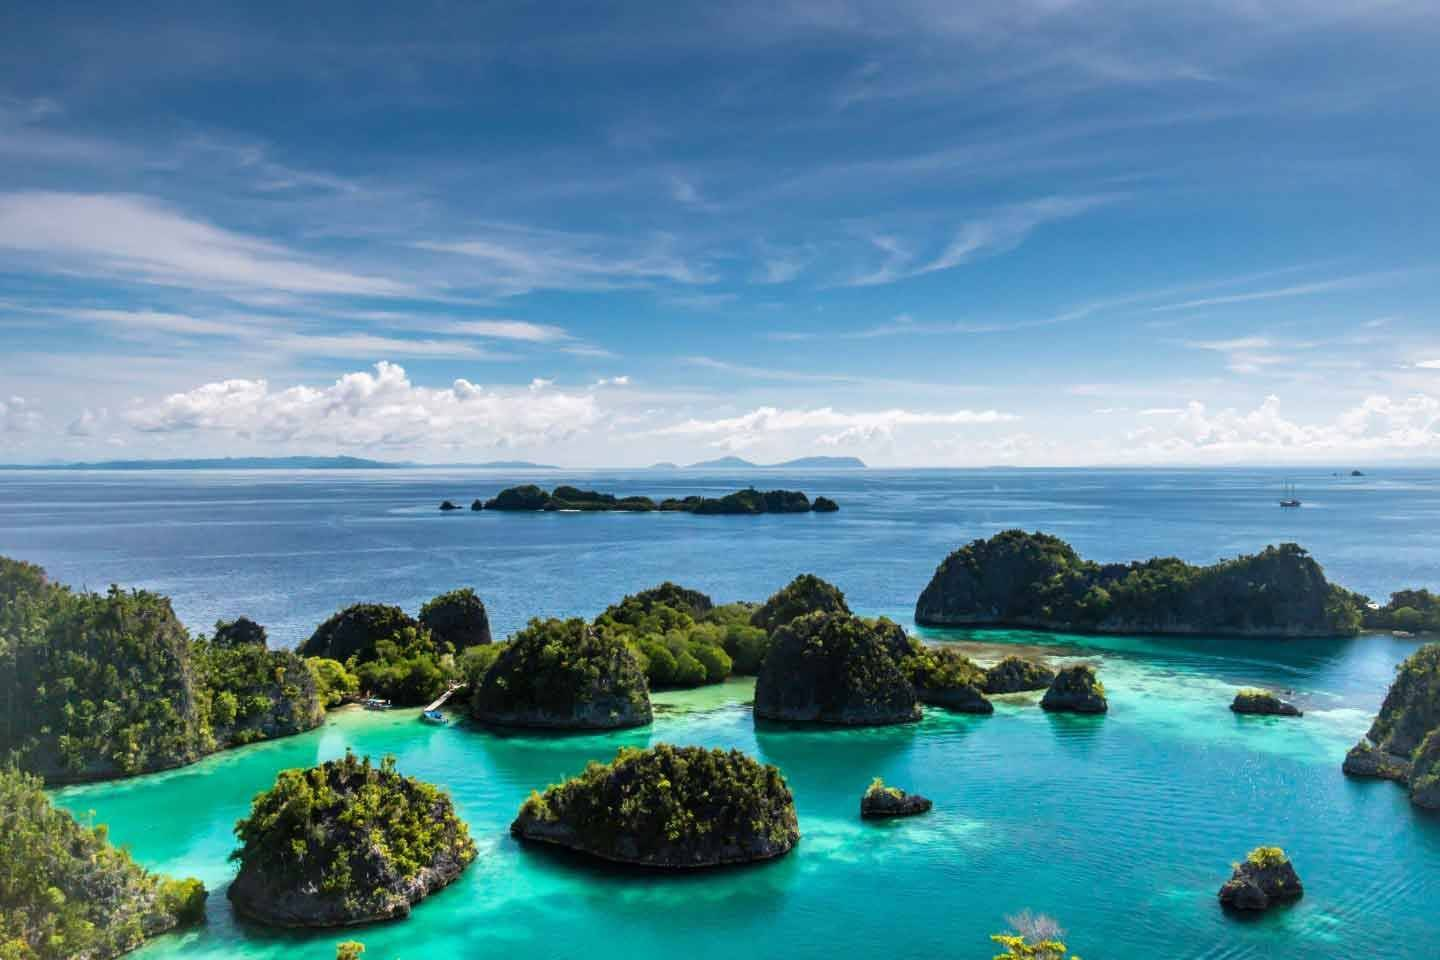 Raja Ampat is one of the best places to visit in Indonesia besides Bali, and has some of the best beaches in Indonesia.